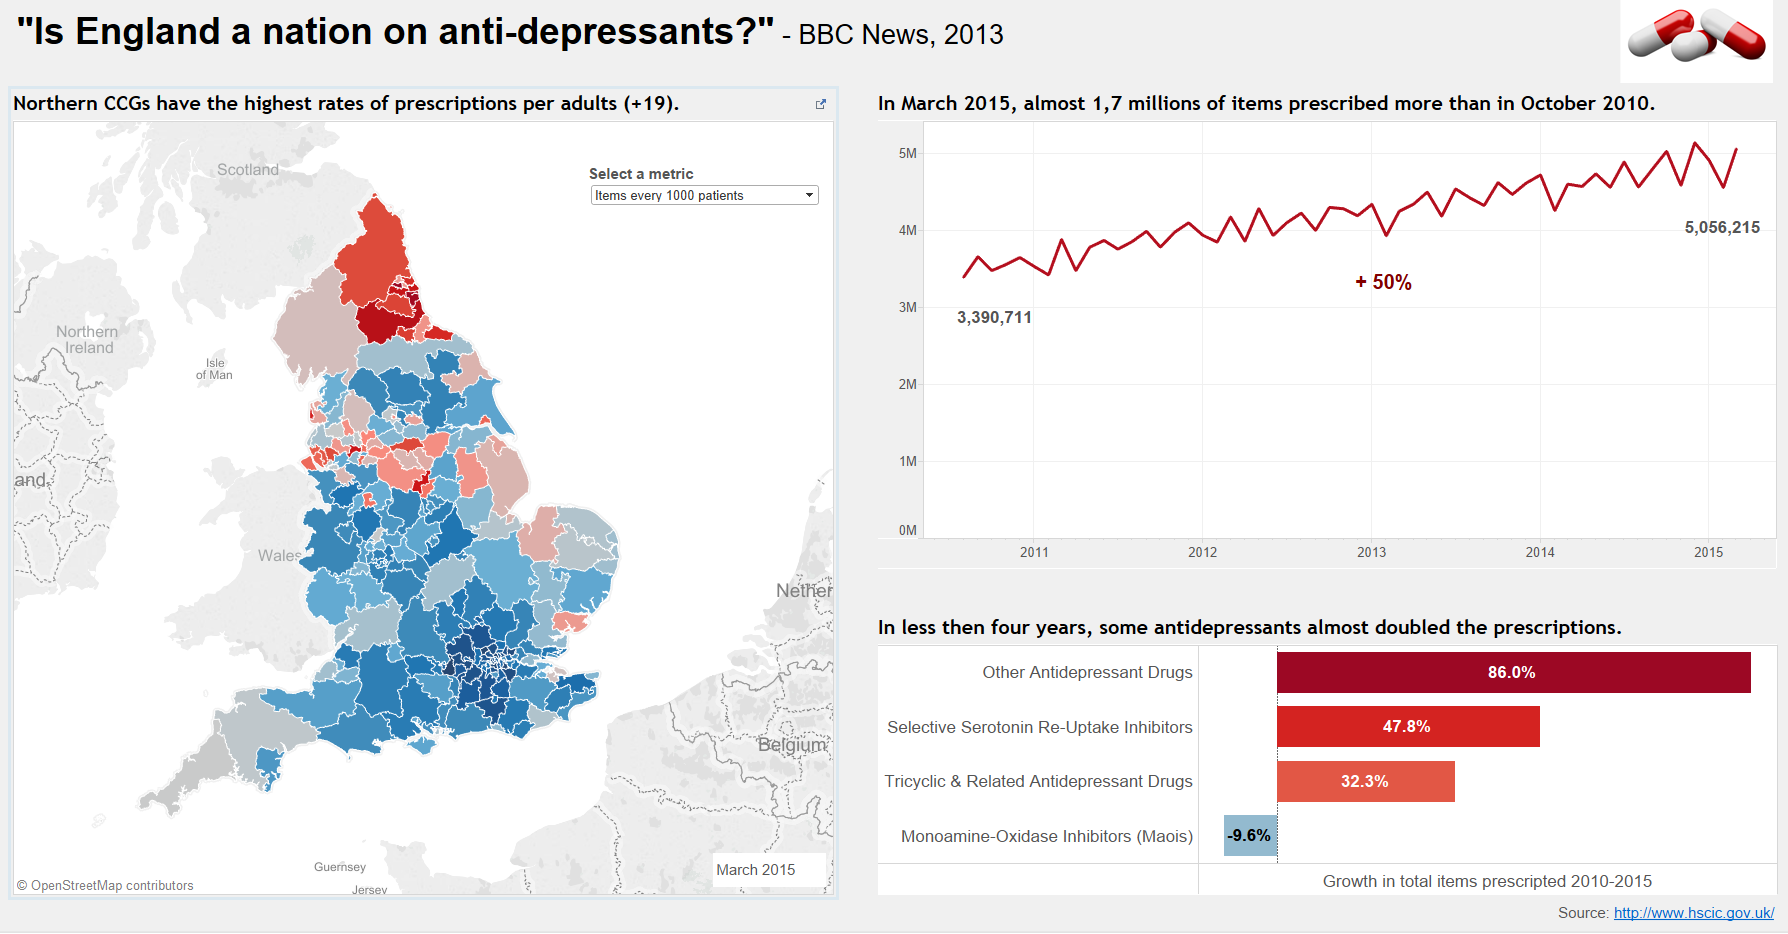 Dashboard #1: Is England a Nation on Antidepressants?